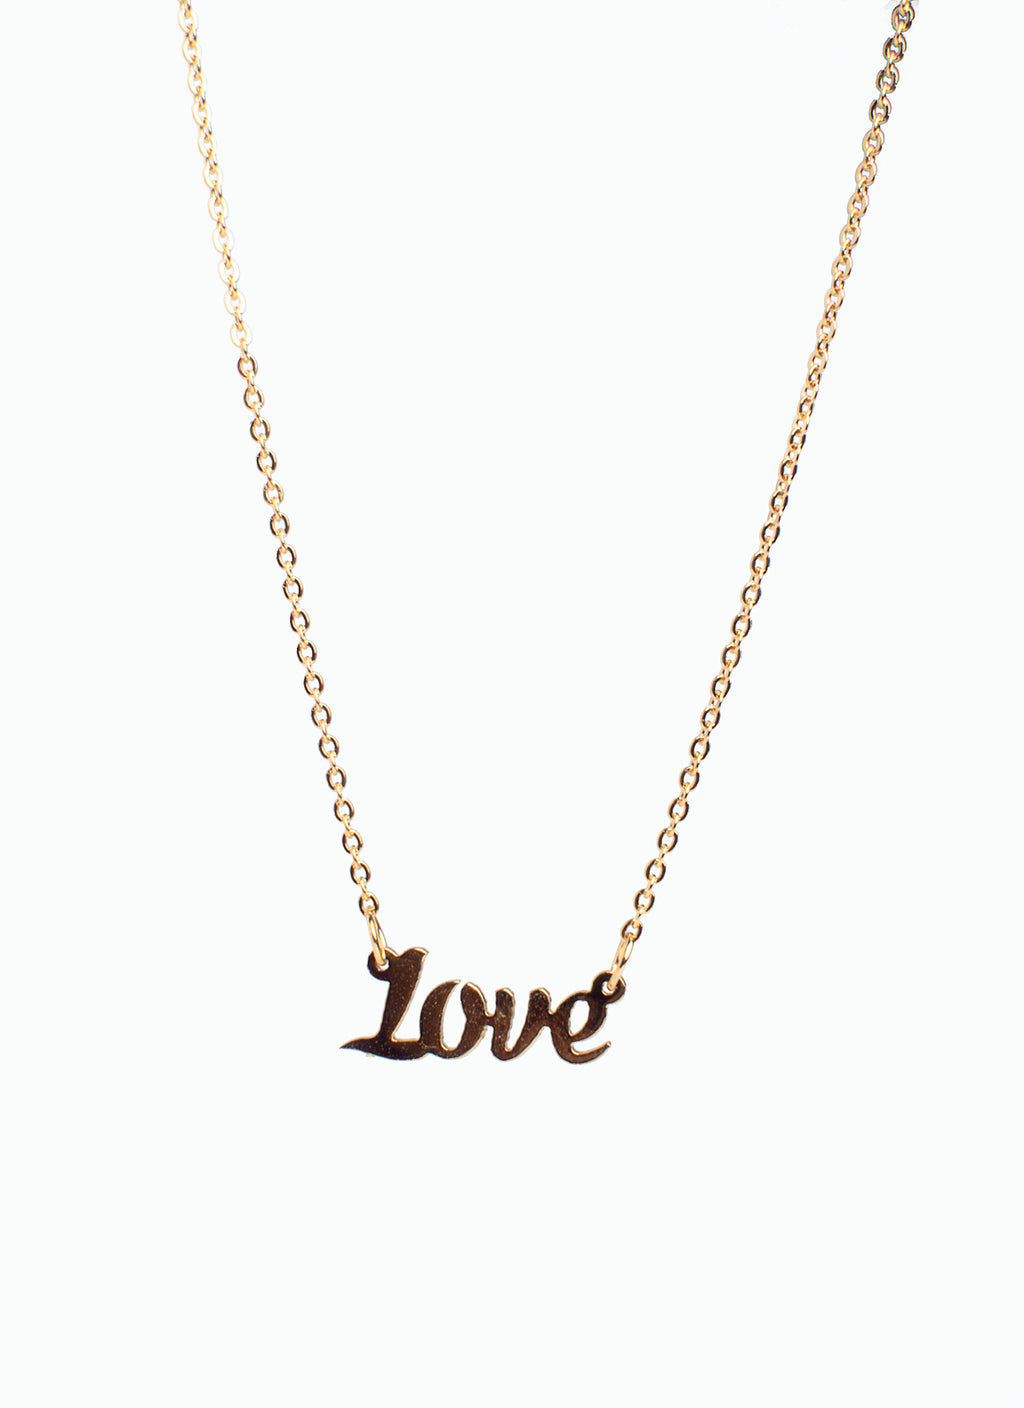 I AM-LOVE necklace TARNISH FREE - ebrook lael